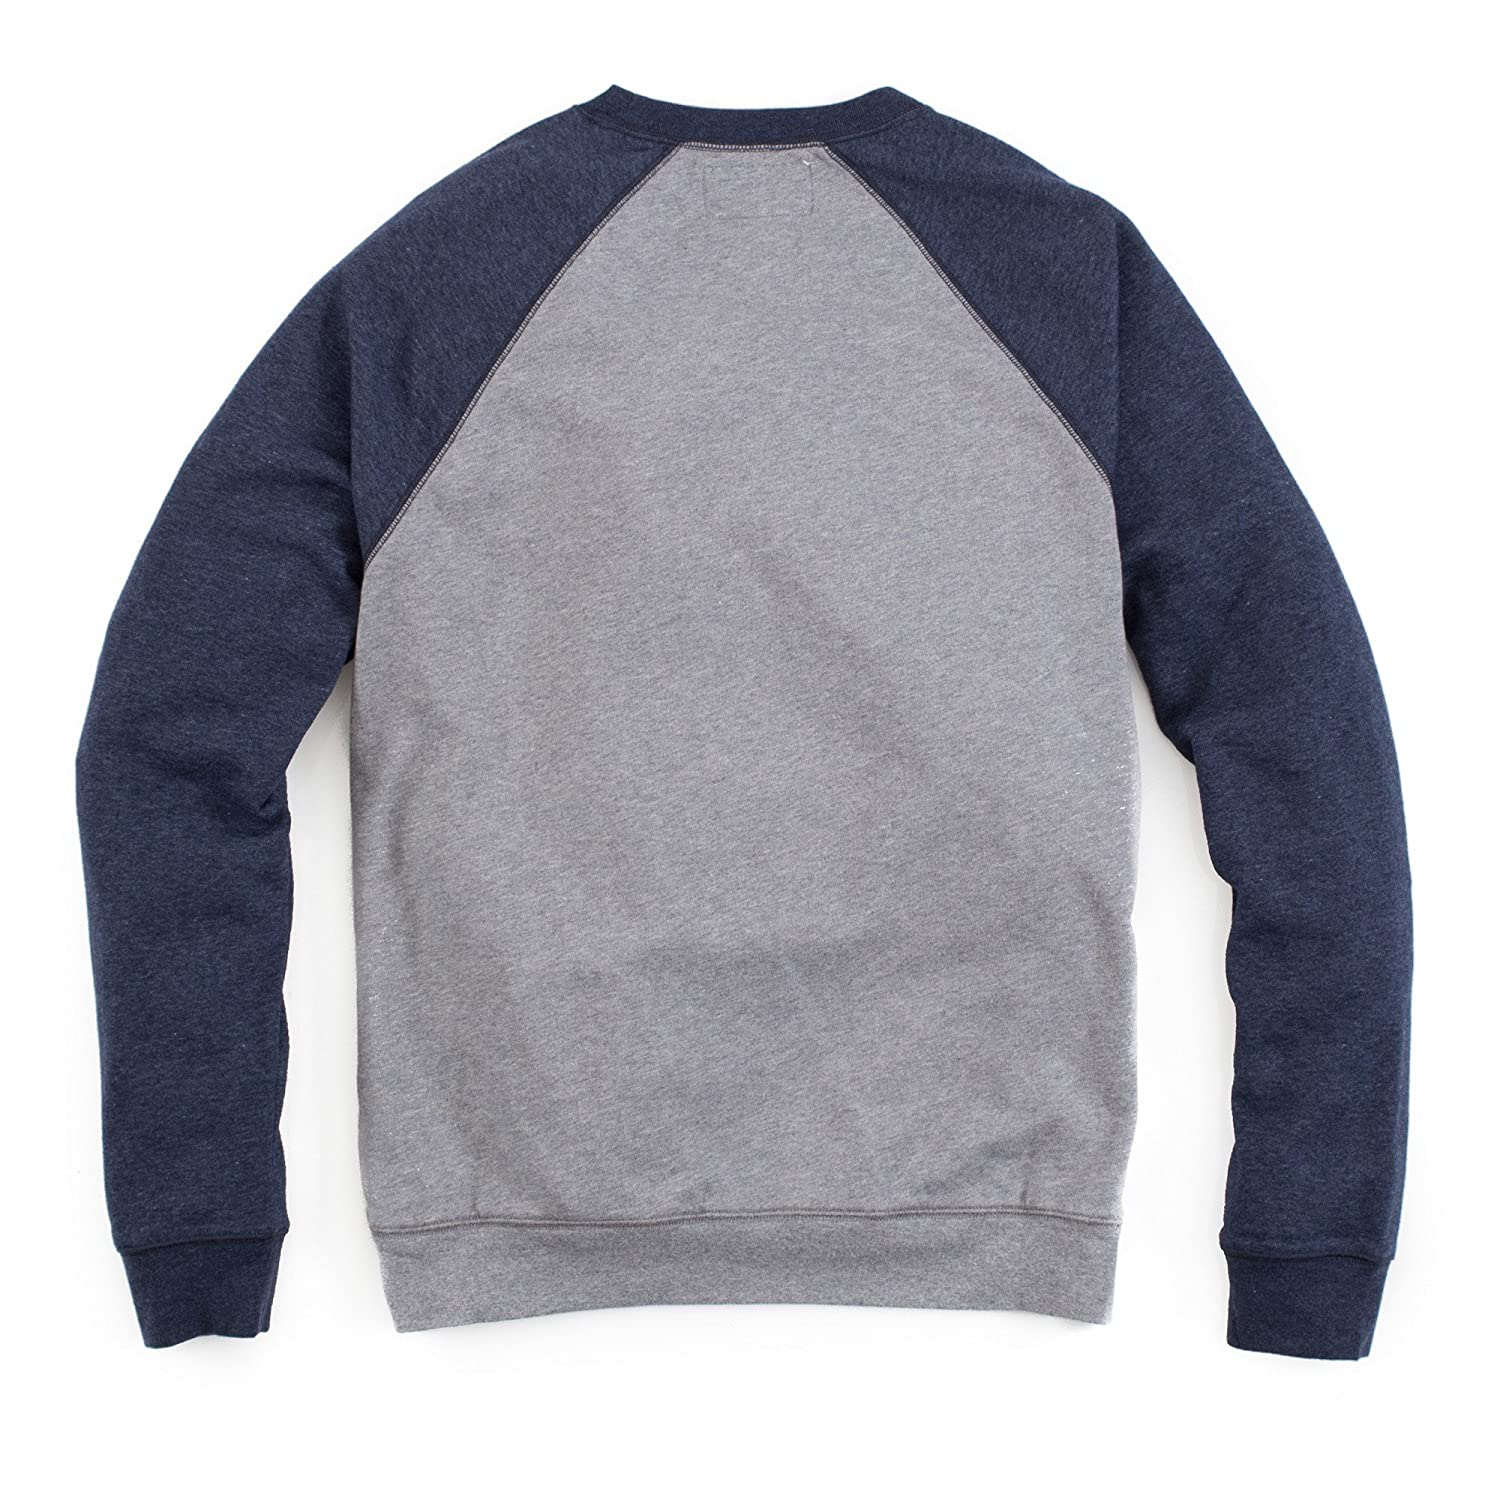 Medium Grey Dark Navy Heather 9579392-MGN Tailor Vintage Mens French Terry Crewneck Raglan Sweathshirt